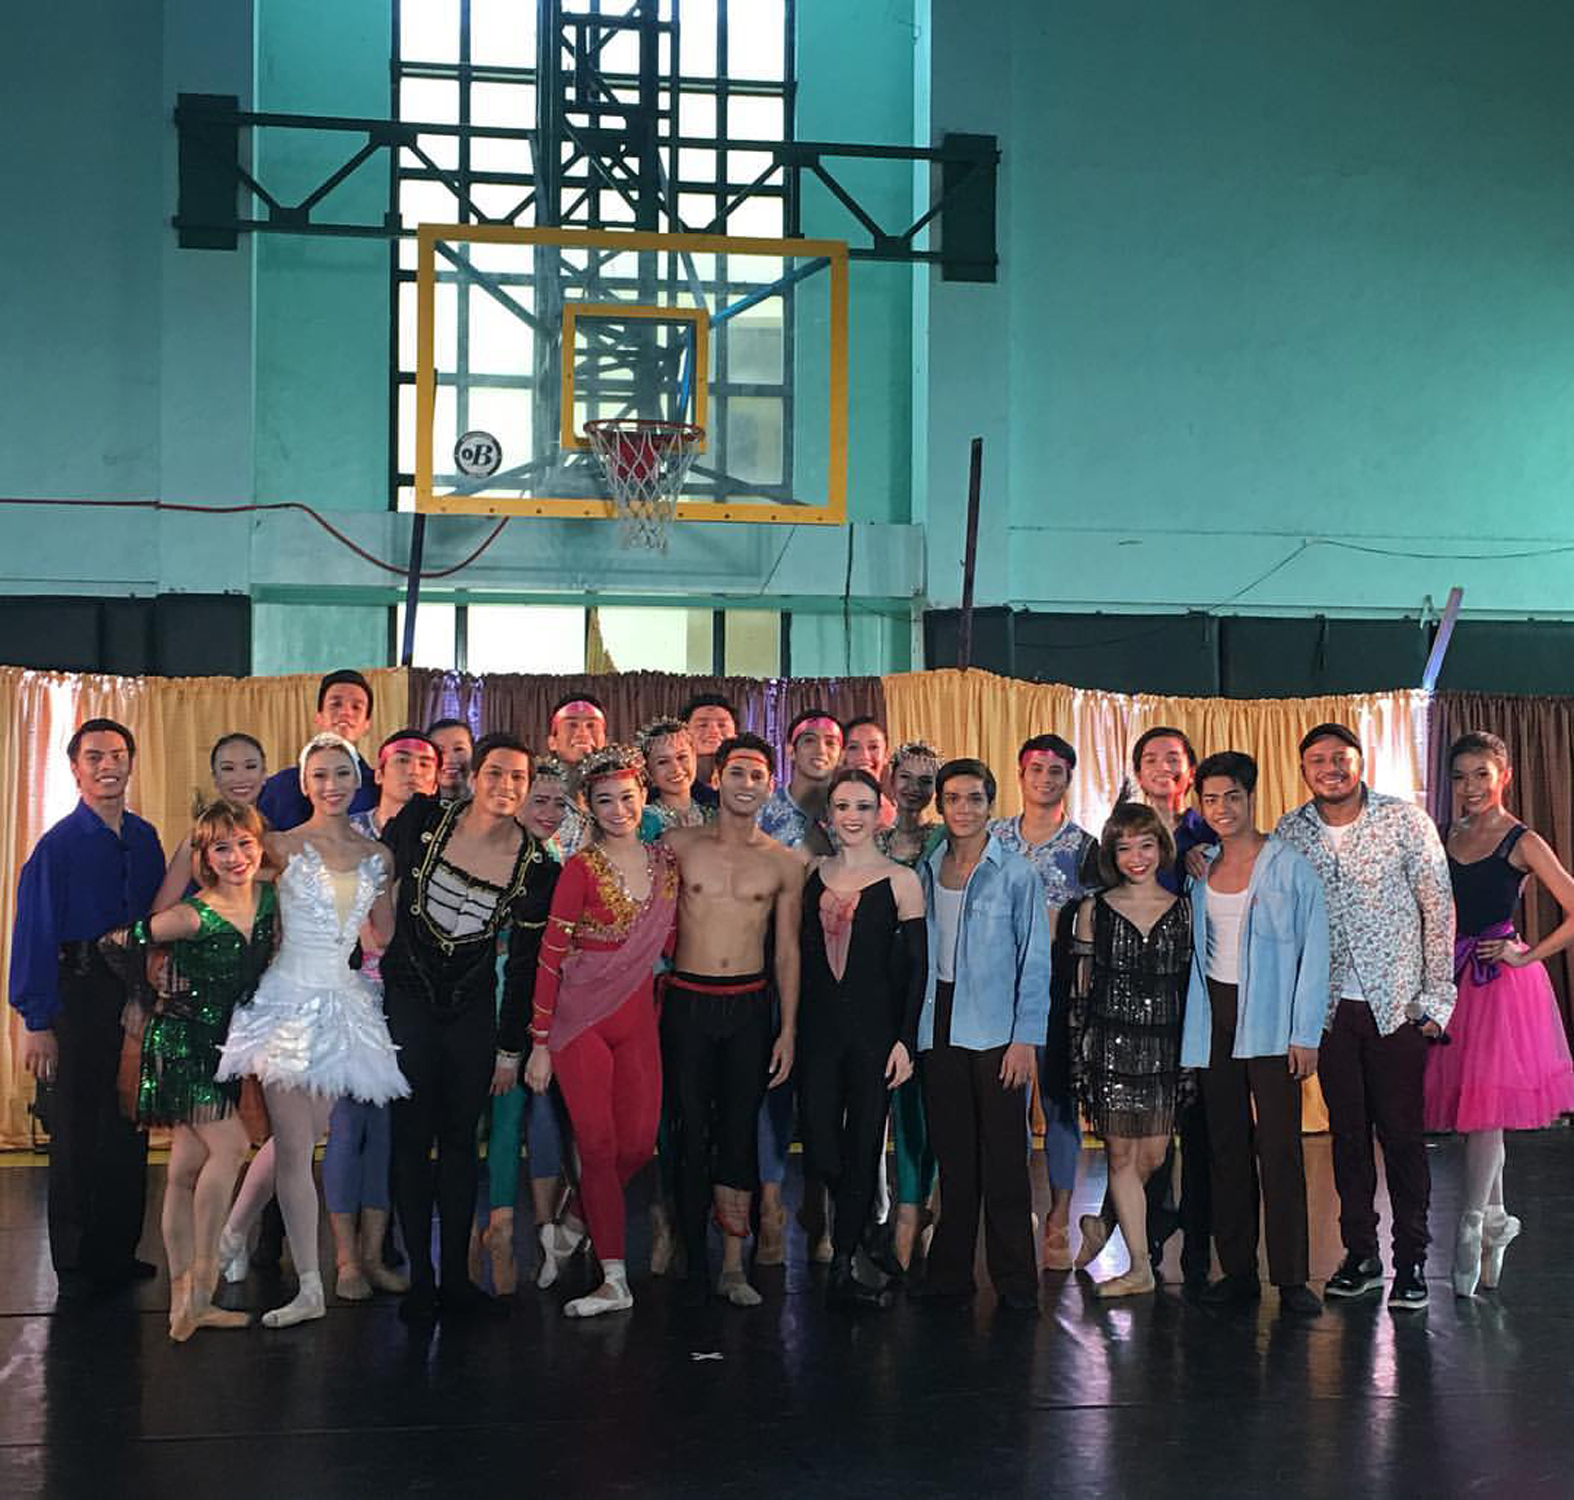 Ballet & Ballads    – featuring Ballet Manila dancers and pop singer Luke Mejares – makes its first stop this year at the Bangkal Elementary School and High School. The show will be brought to other parts of Metro Manila and key provincial cities.